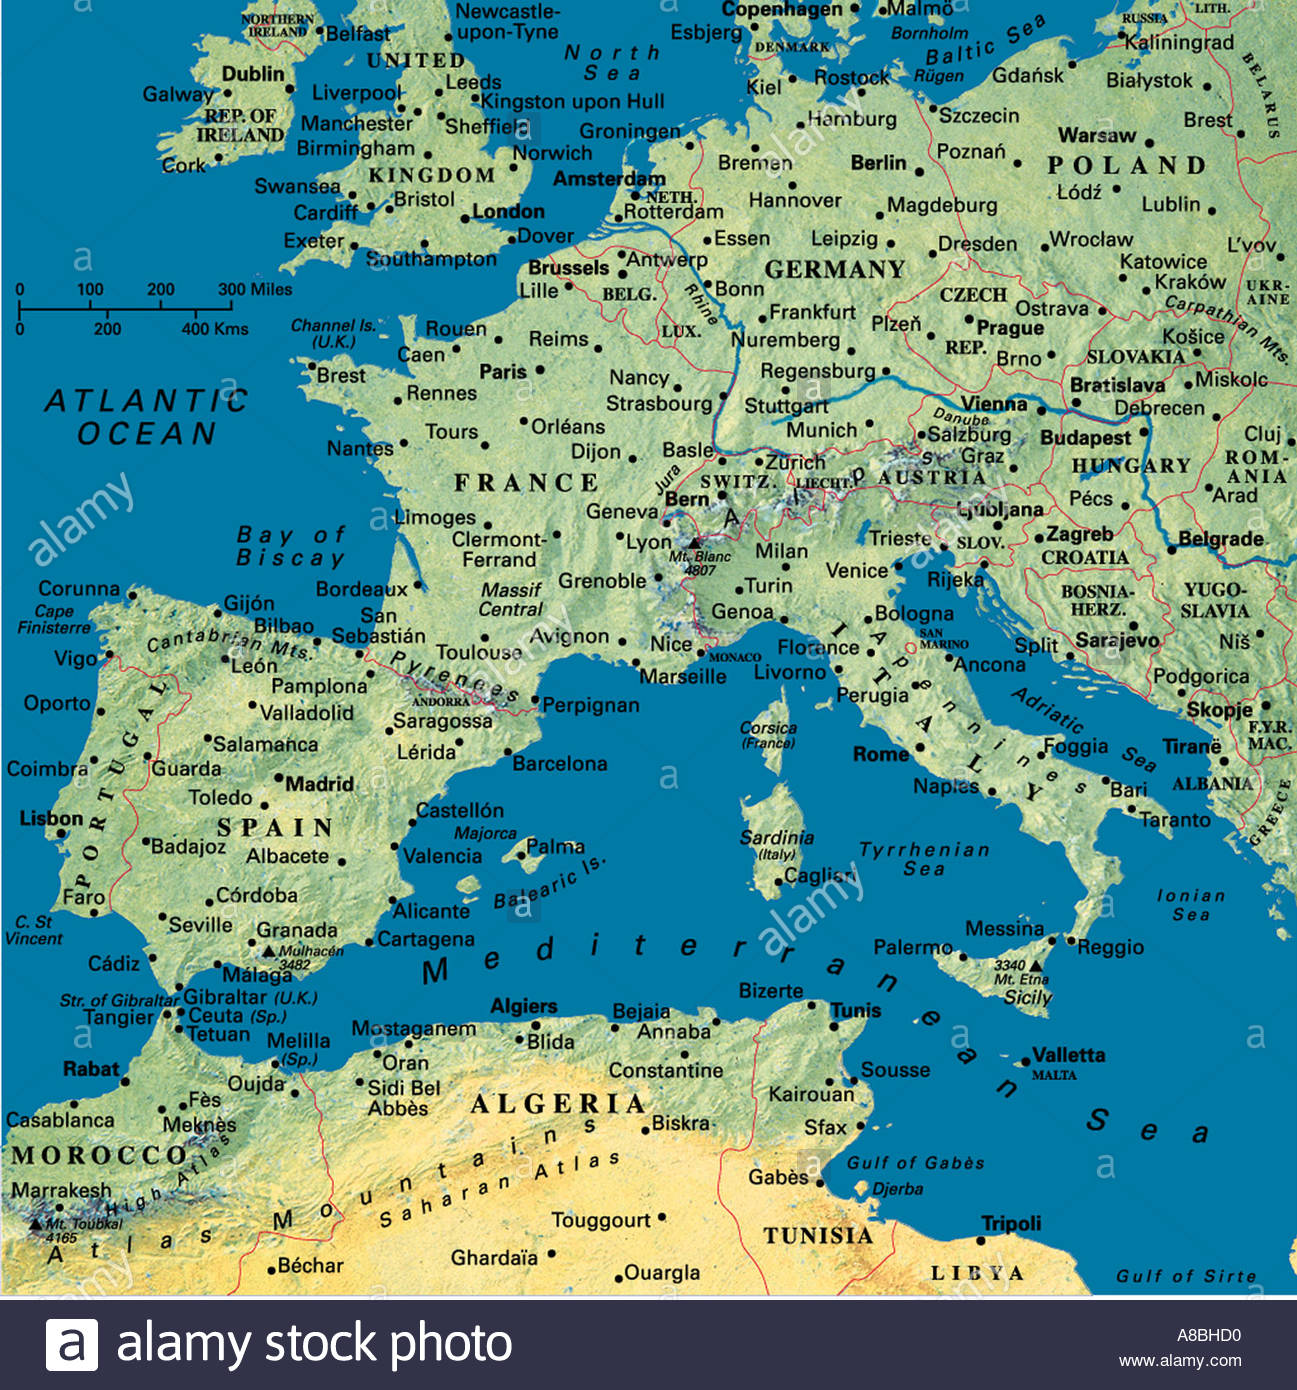 map maps europe algeria tunesia north africa spain portugal france germany italy